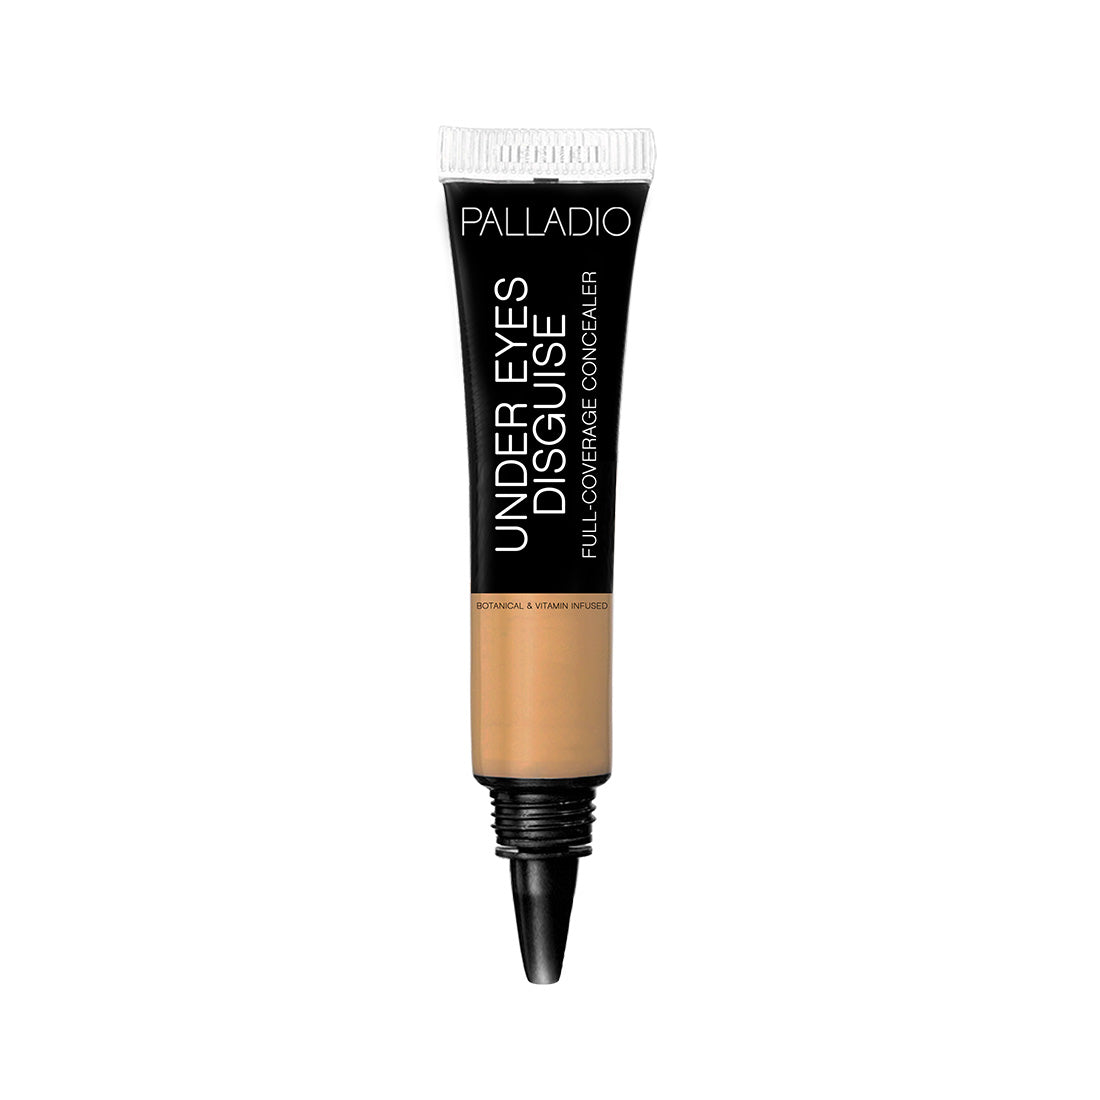 UNDER EYES DISGUISE CONCEALER - CAFÉ AU LAIT